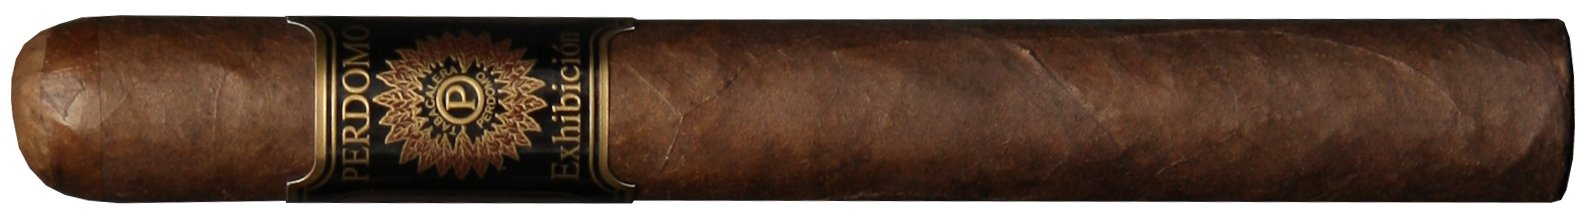 Perdomo Exhibicion Maduro No. 7 Churchill